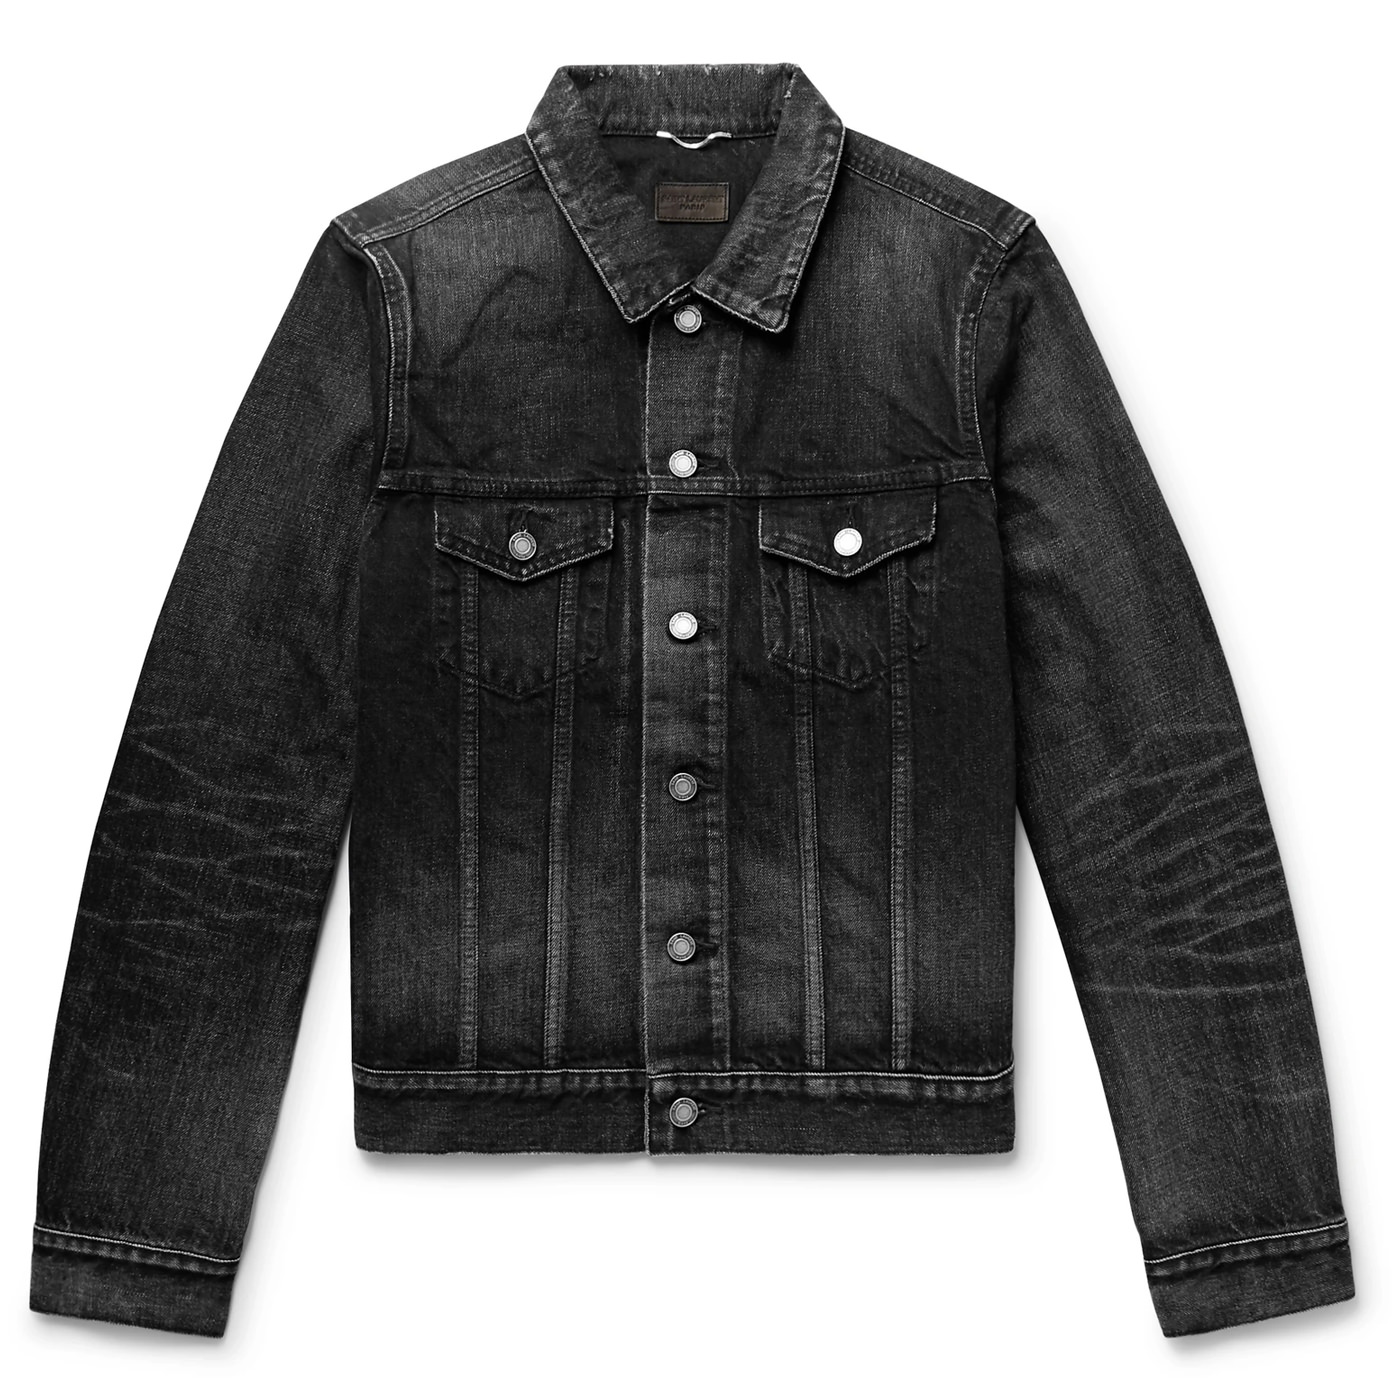 Style Mr Porter Veste Jean Noire Denim Saint Laurent